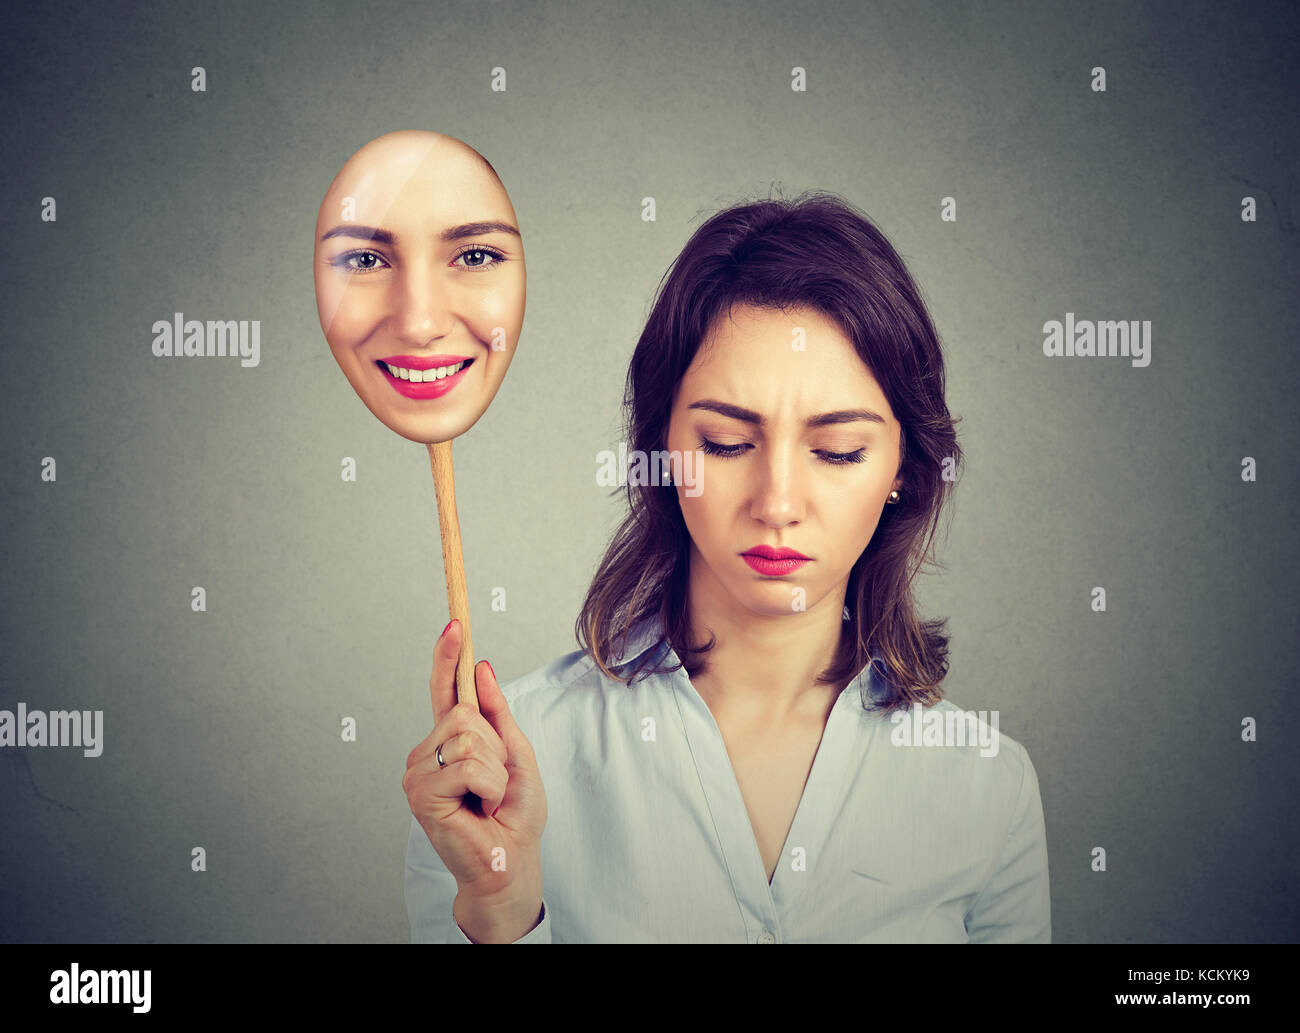 Sad woman looking down taking off happy mask of herself Stock Photo